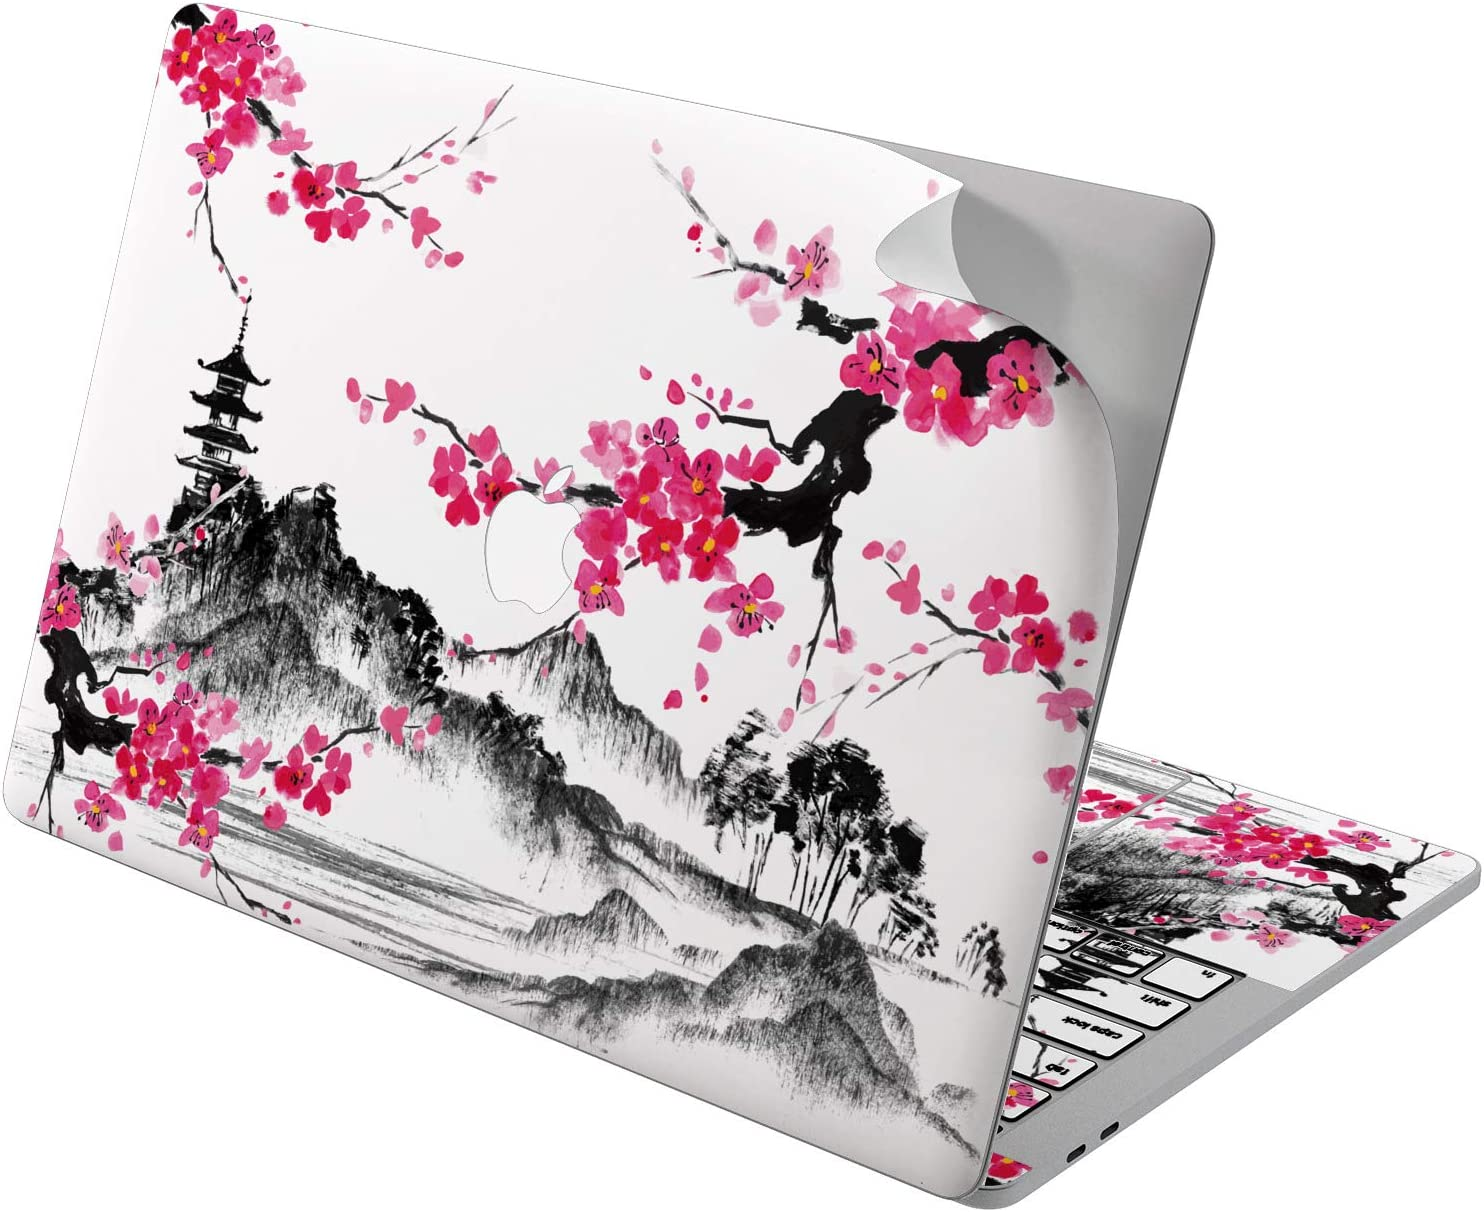 "Cavka Vinyl Decal Skin for Apple MacBook Pro 13"" 2019 15"" 2018 Air 13"" 2020 Retina 2015 Mac 11"" Mac 12"" Sticker Cover Flowers Art Cherry Sakura Japanese Laptop Blossom Design Print Pink Protective"